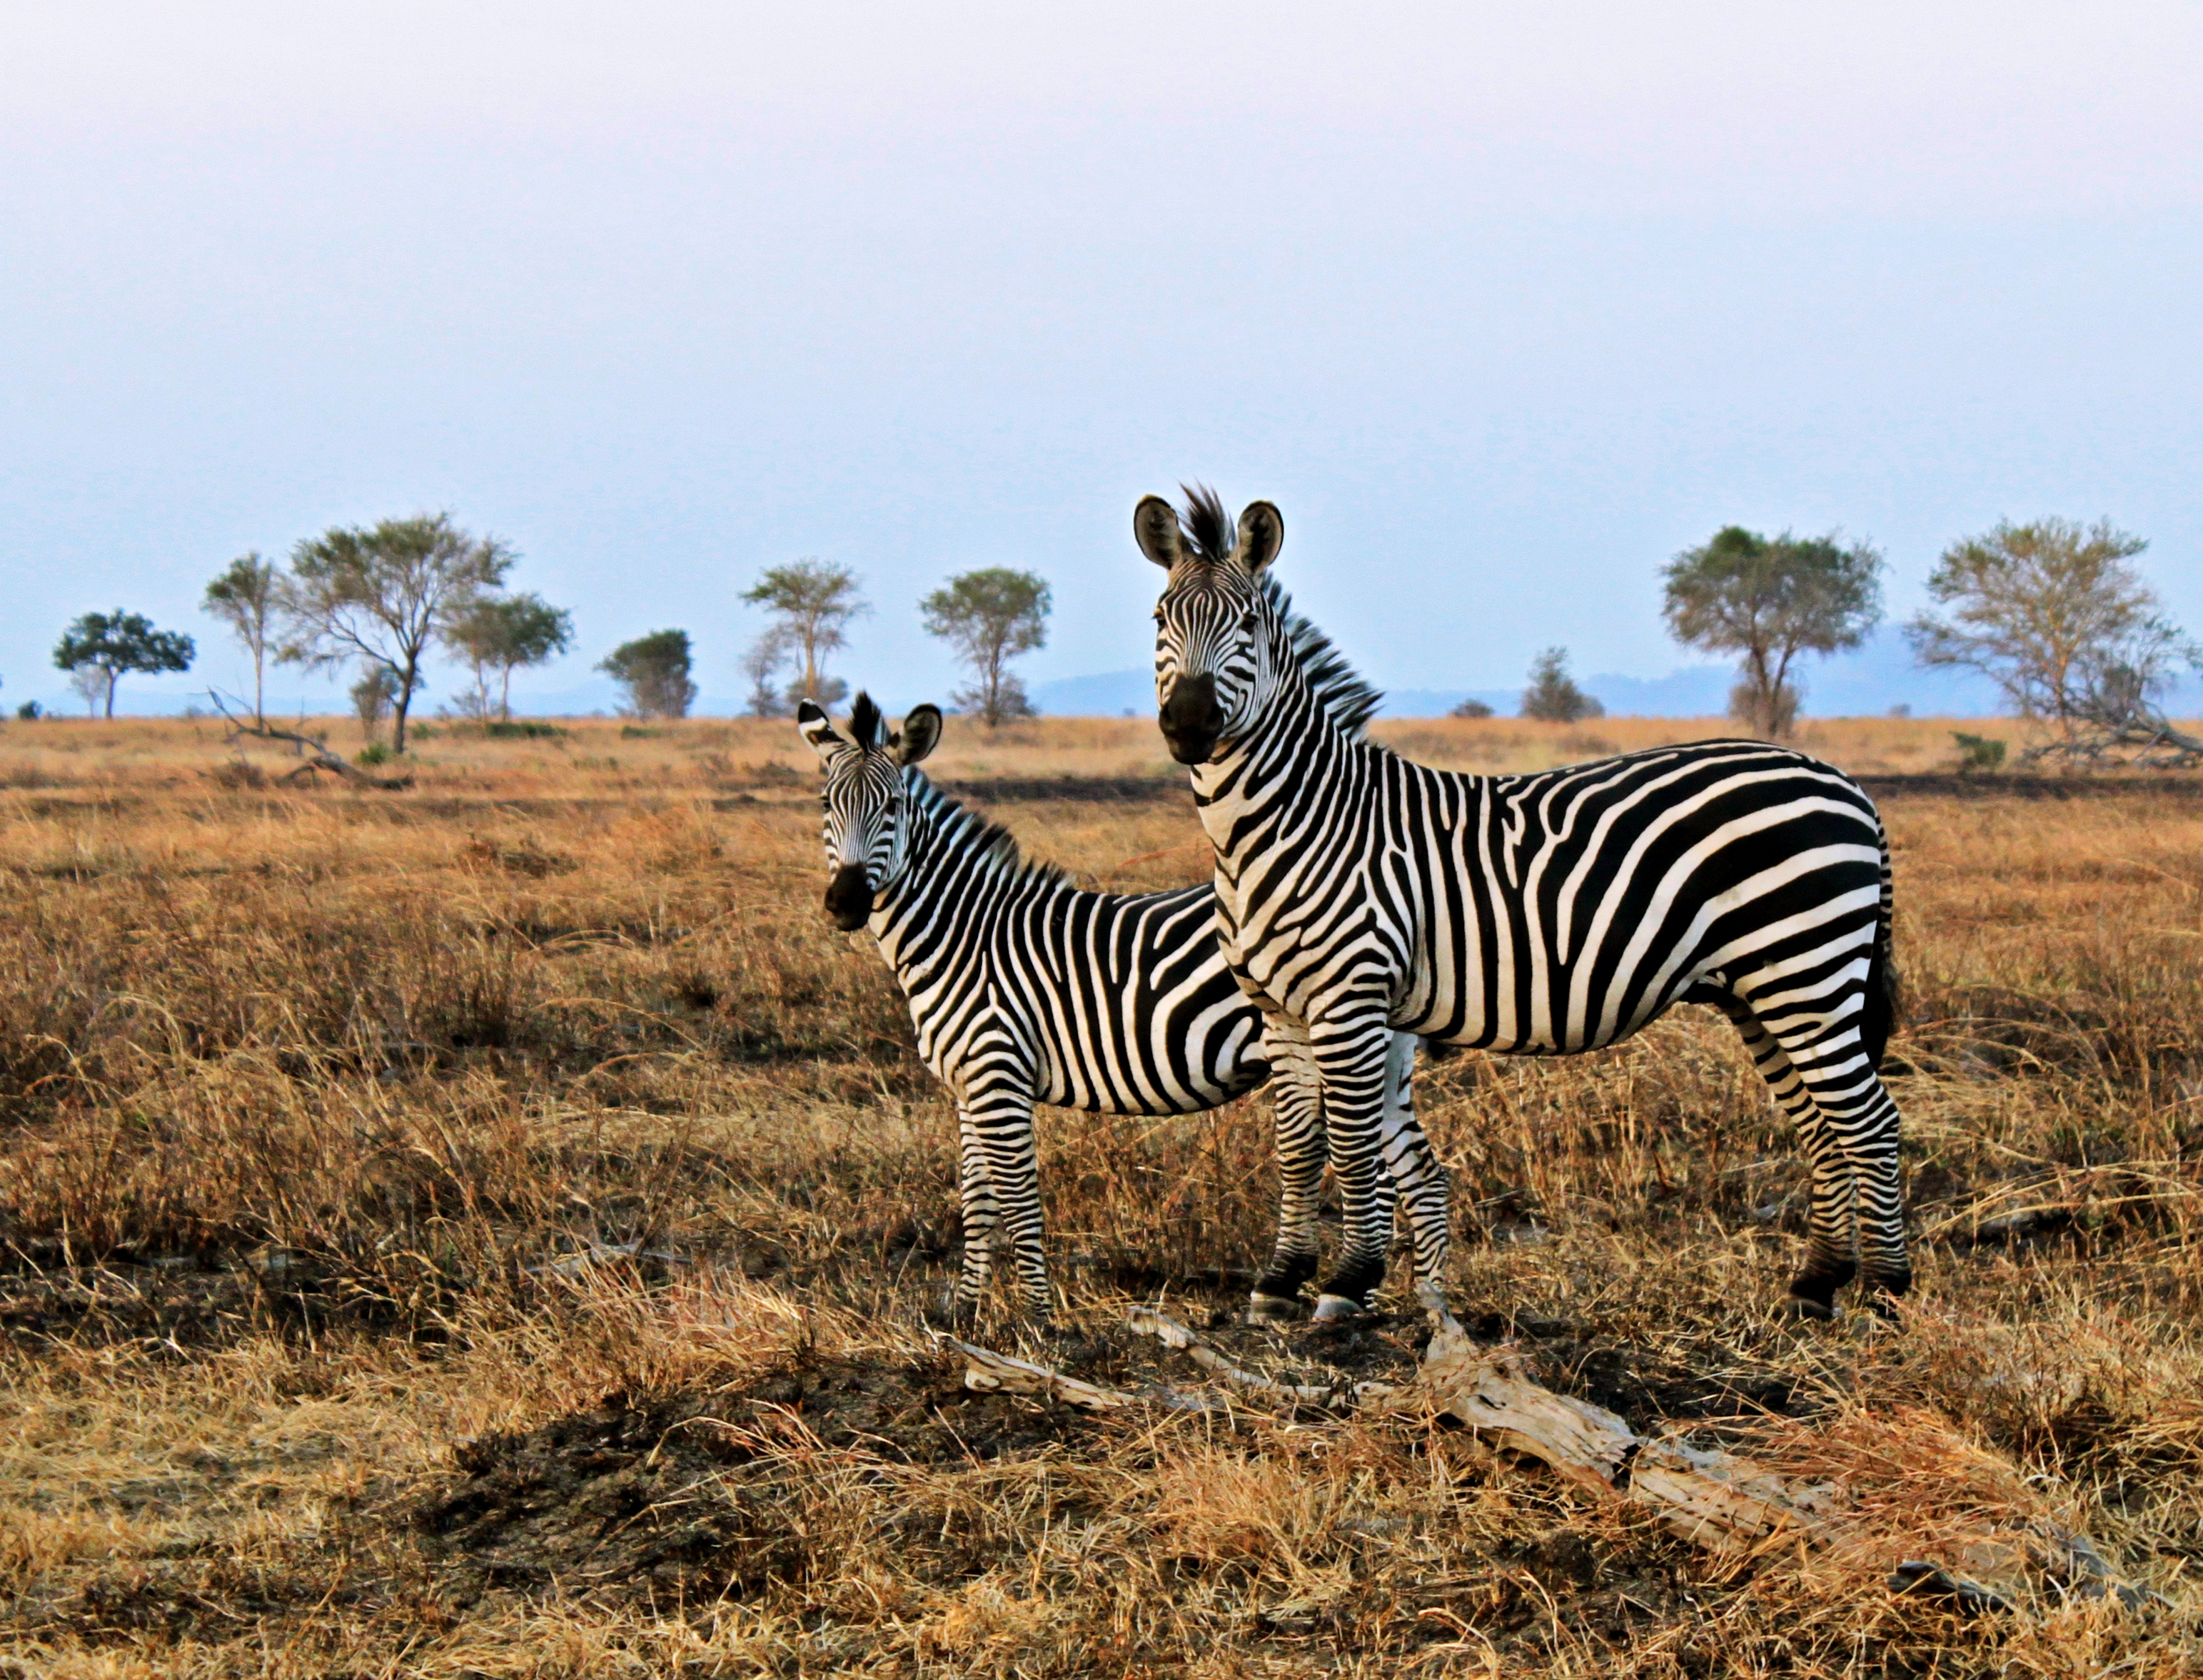 Two zebras in Mikumi National Park. Photo taken on July 18, 2012.